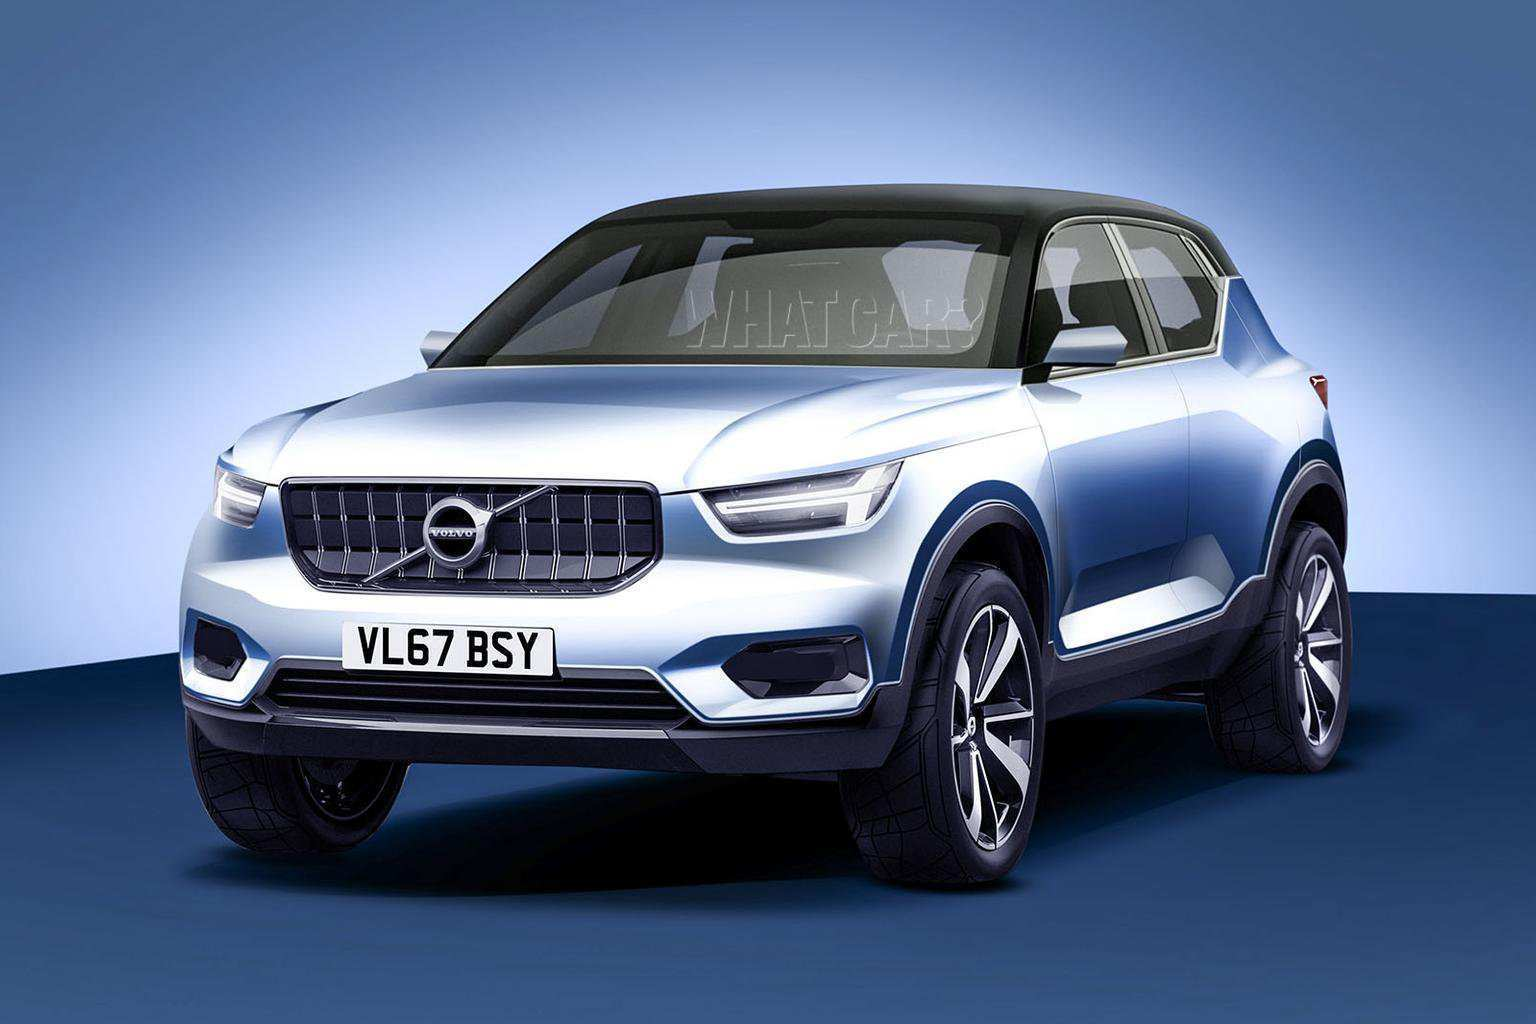 64 Best Review Volvo All Electric Cars By 2019 Rumors for Volvo All Electric Cars By 2019